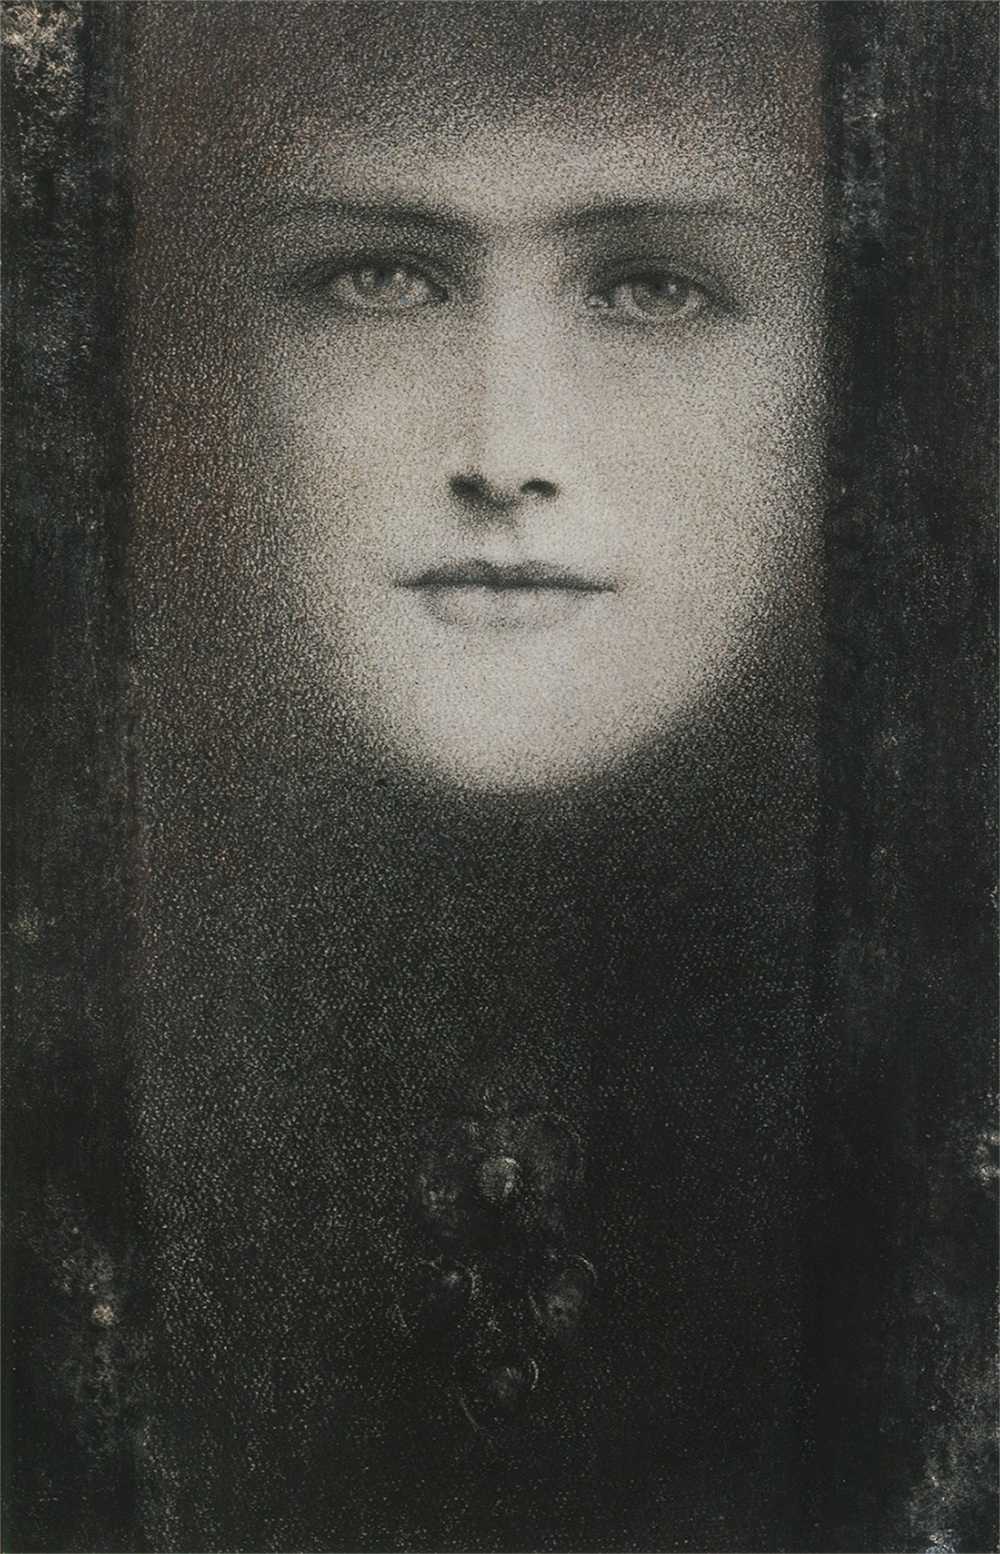 Khnopff, The Mask of the Black Curtain, 1909